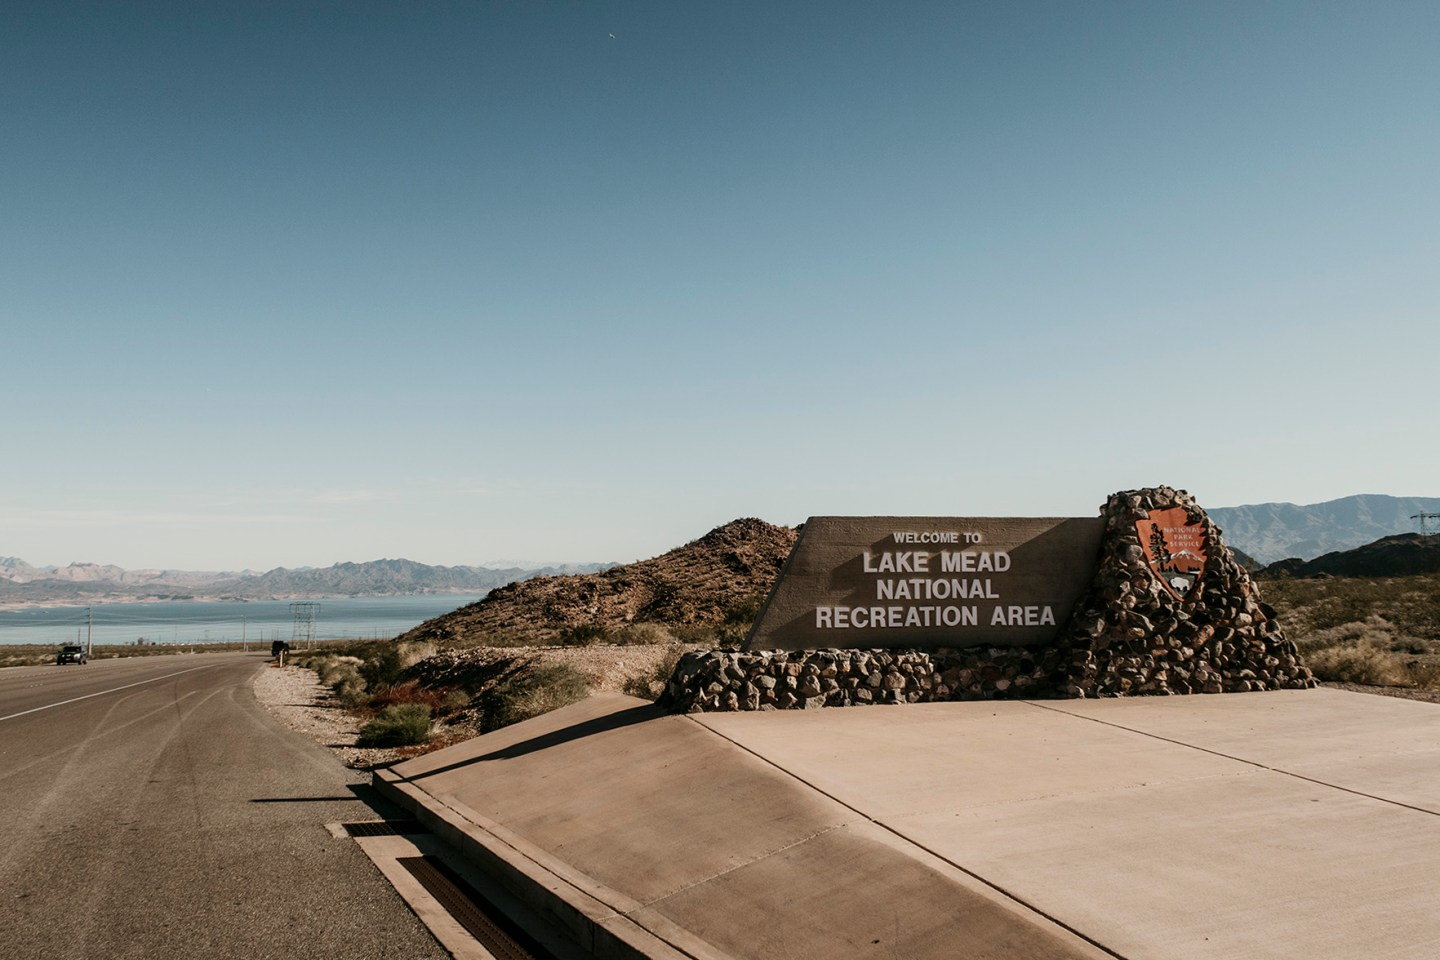 Lake Mead National Recreation Area in Nevada